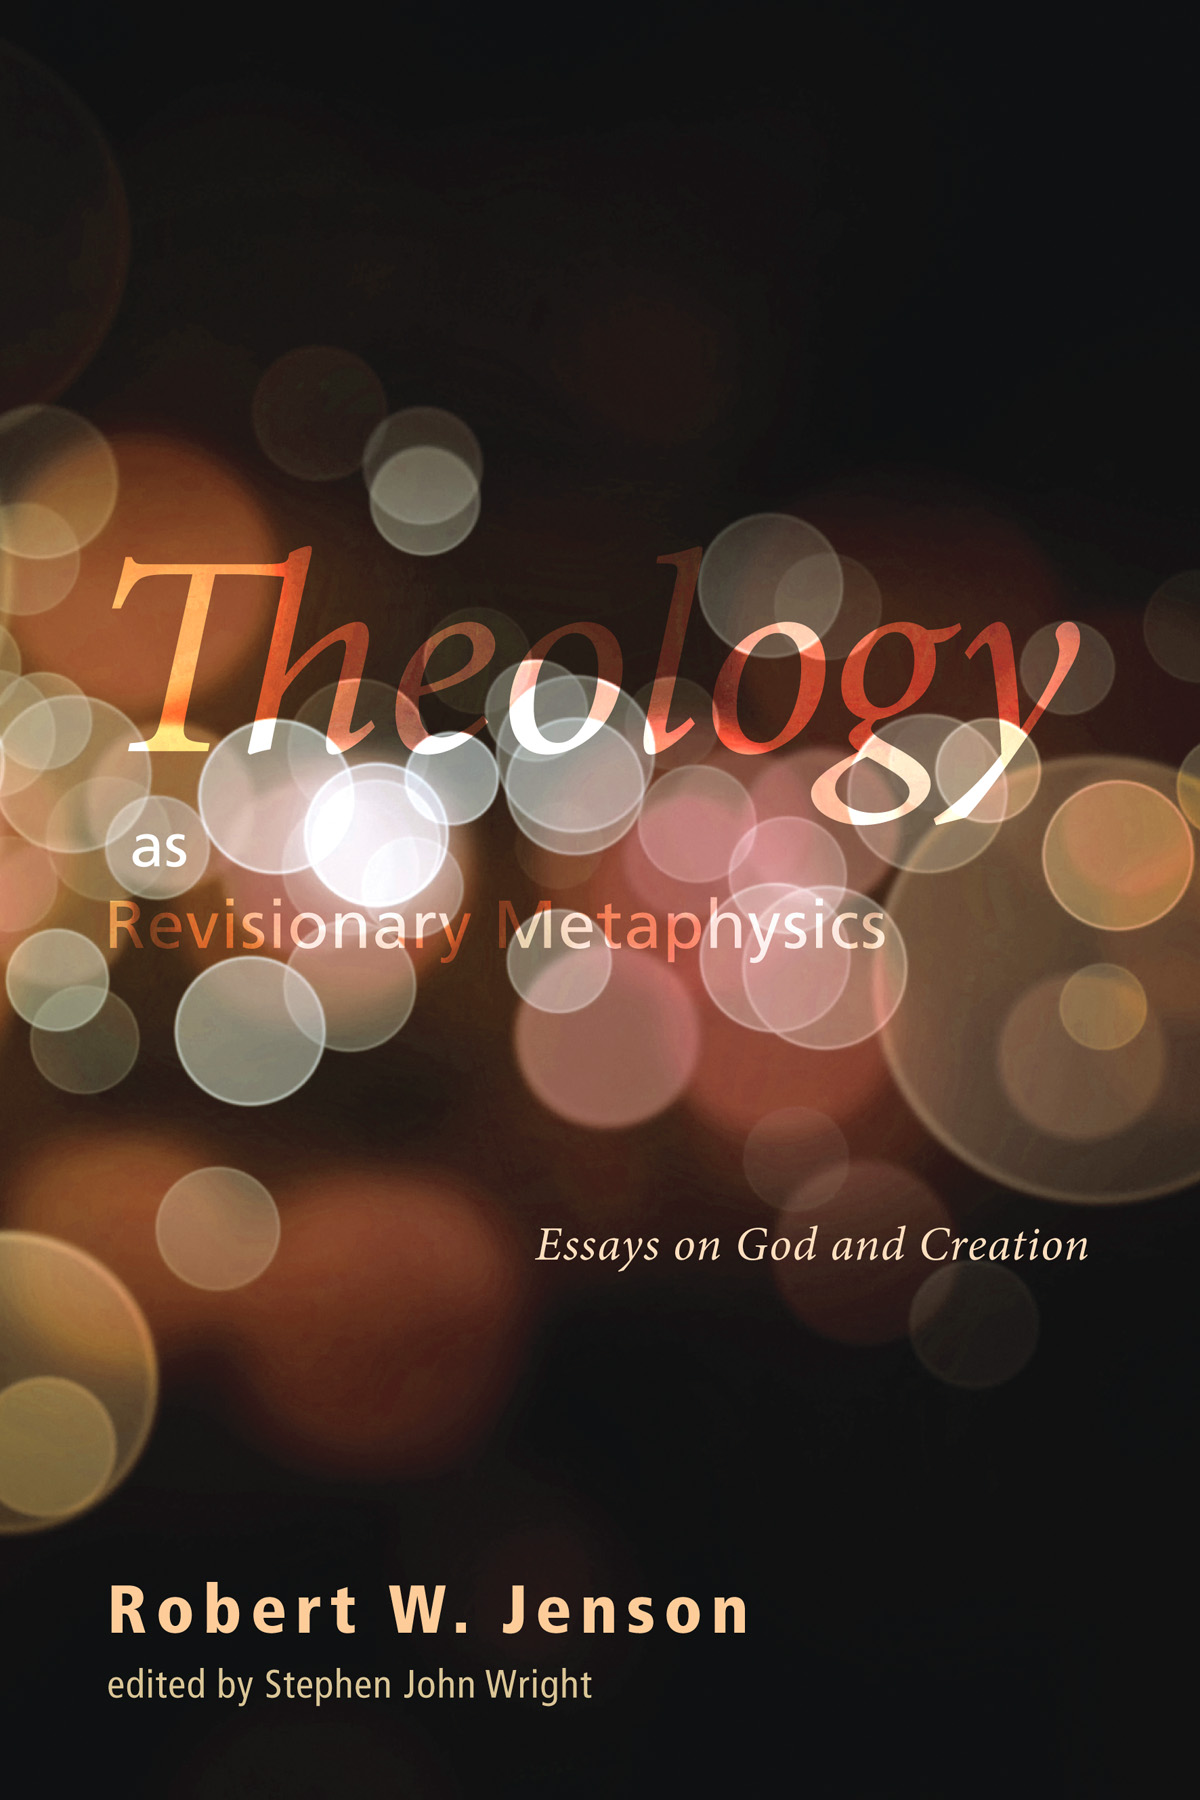 jenson essays in theology of culture Amazonin - buy essays in theology of culture book online at best prices in india on amazonin read essays in theology of culture book reviews & author details and more at amazonin free delivery on qualified orders.